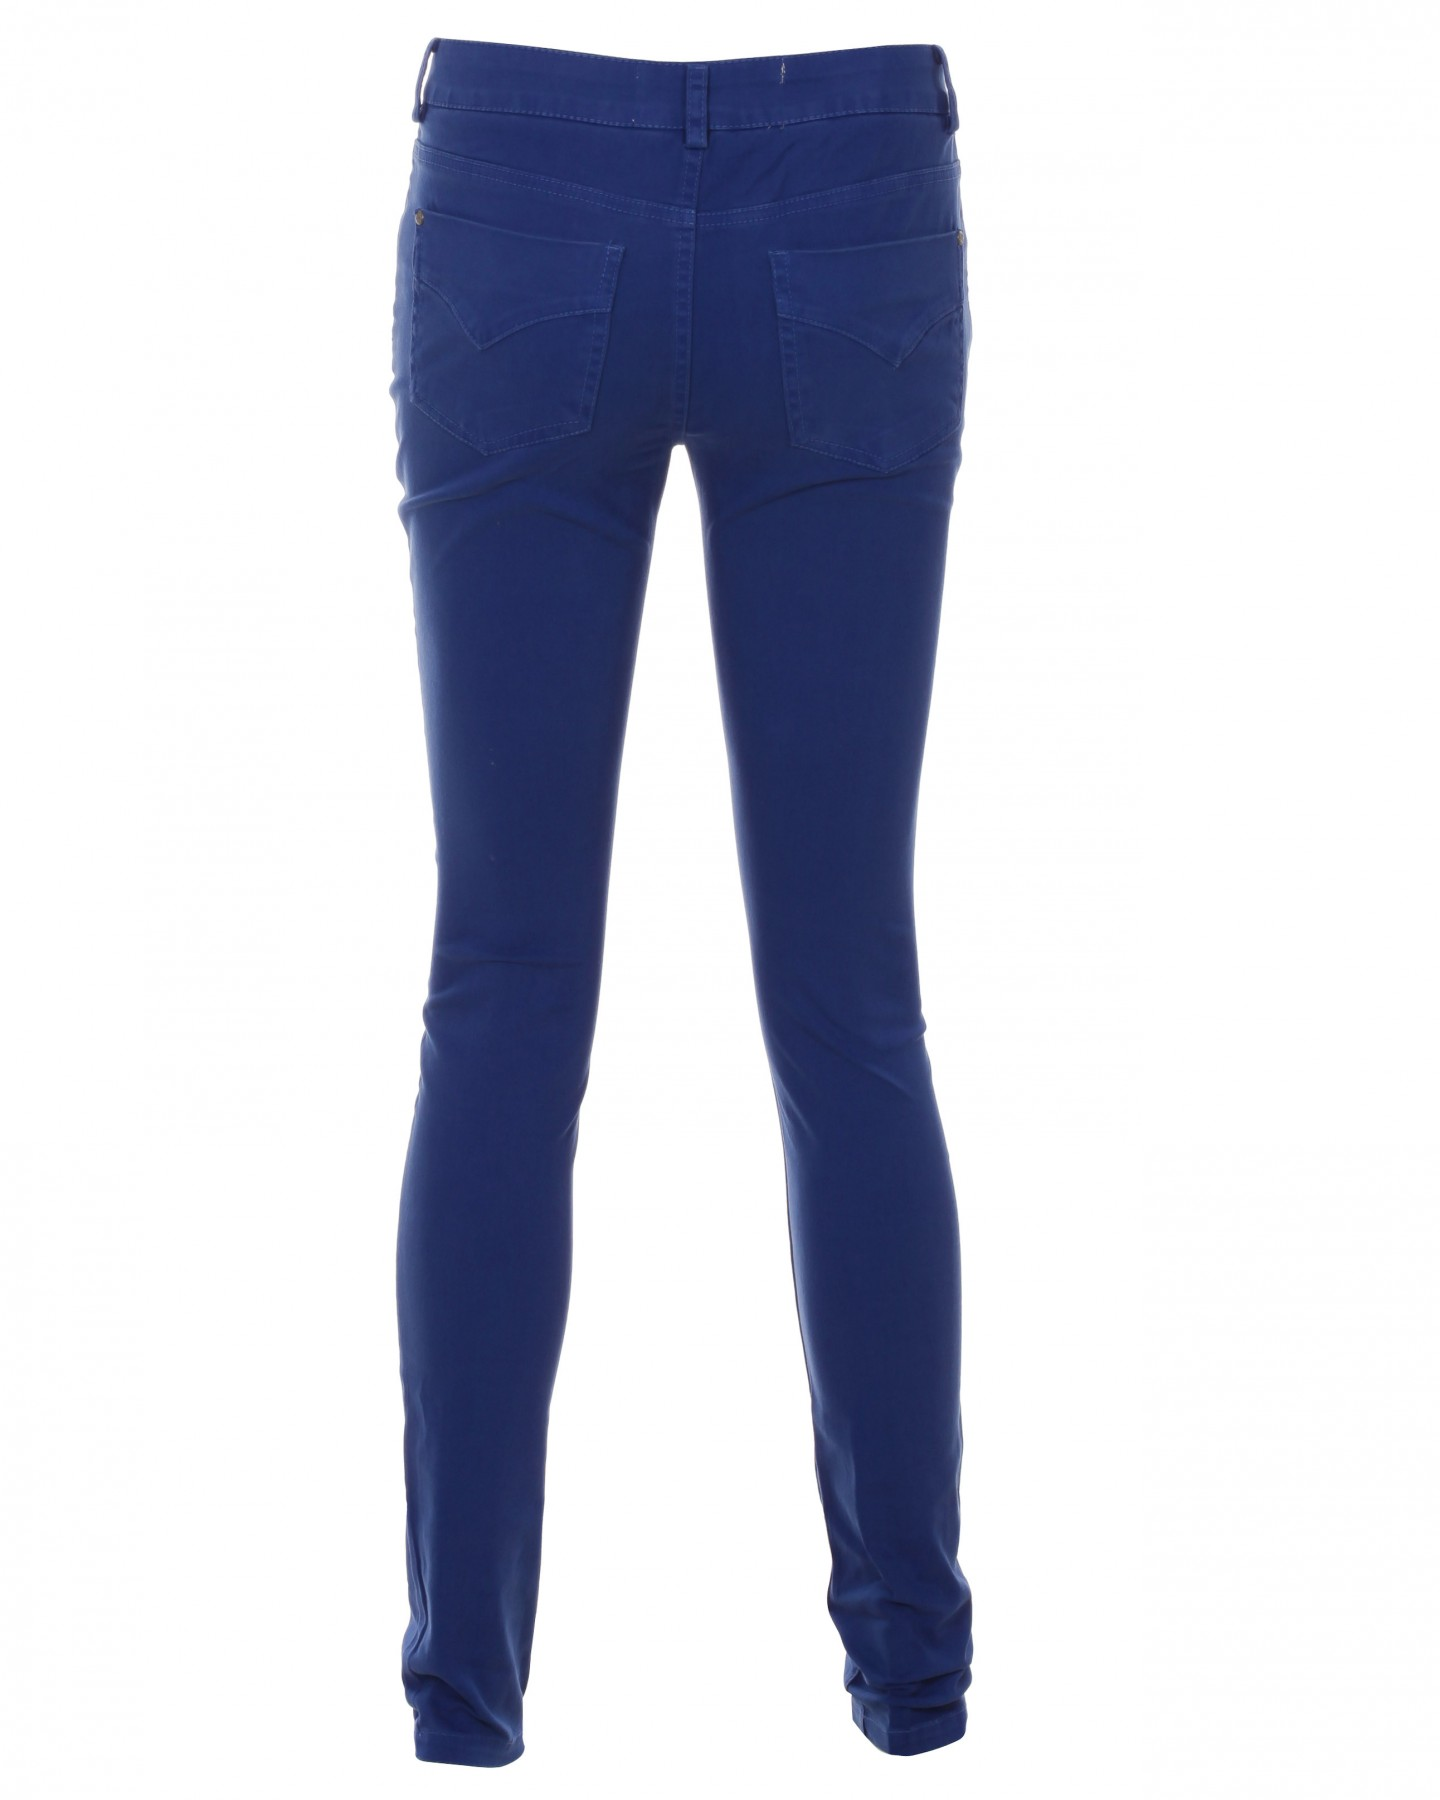 Wonderful Clothingpantsppp1mj9001royalbluejpg